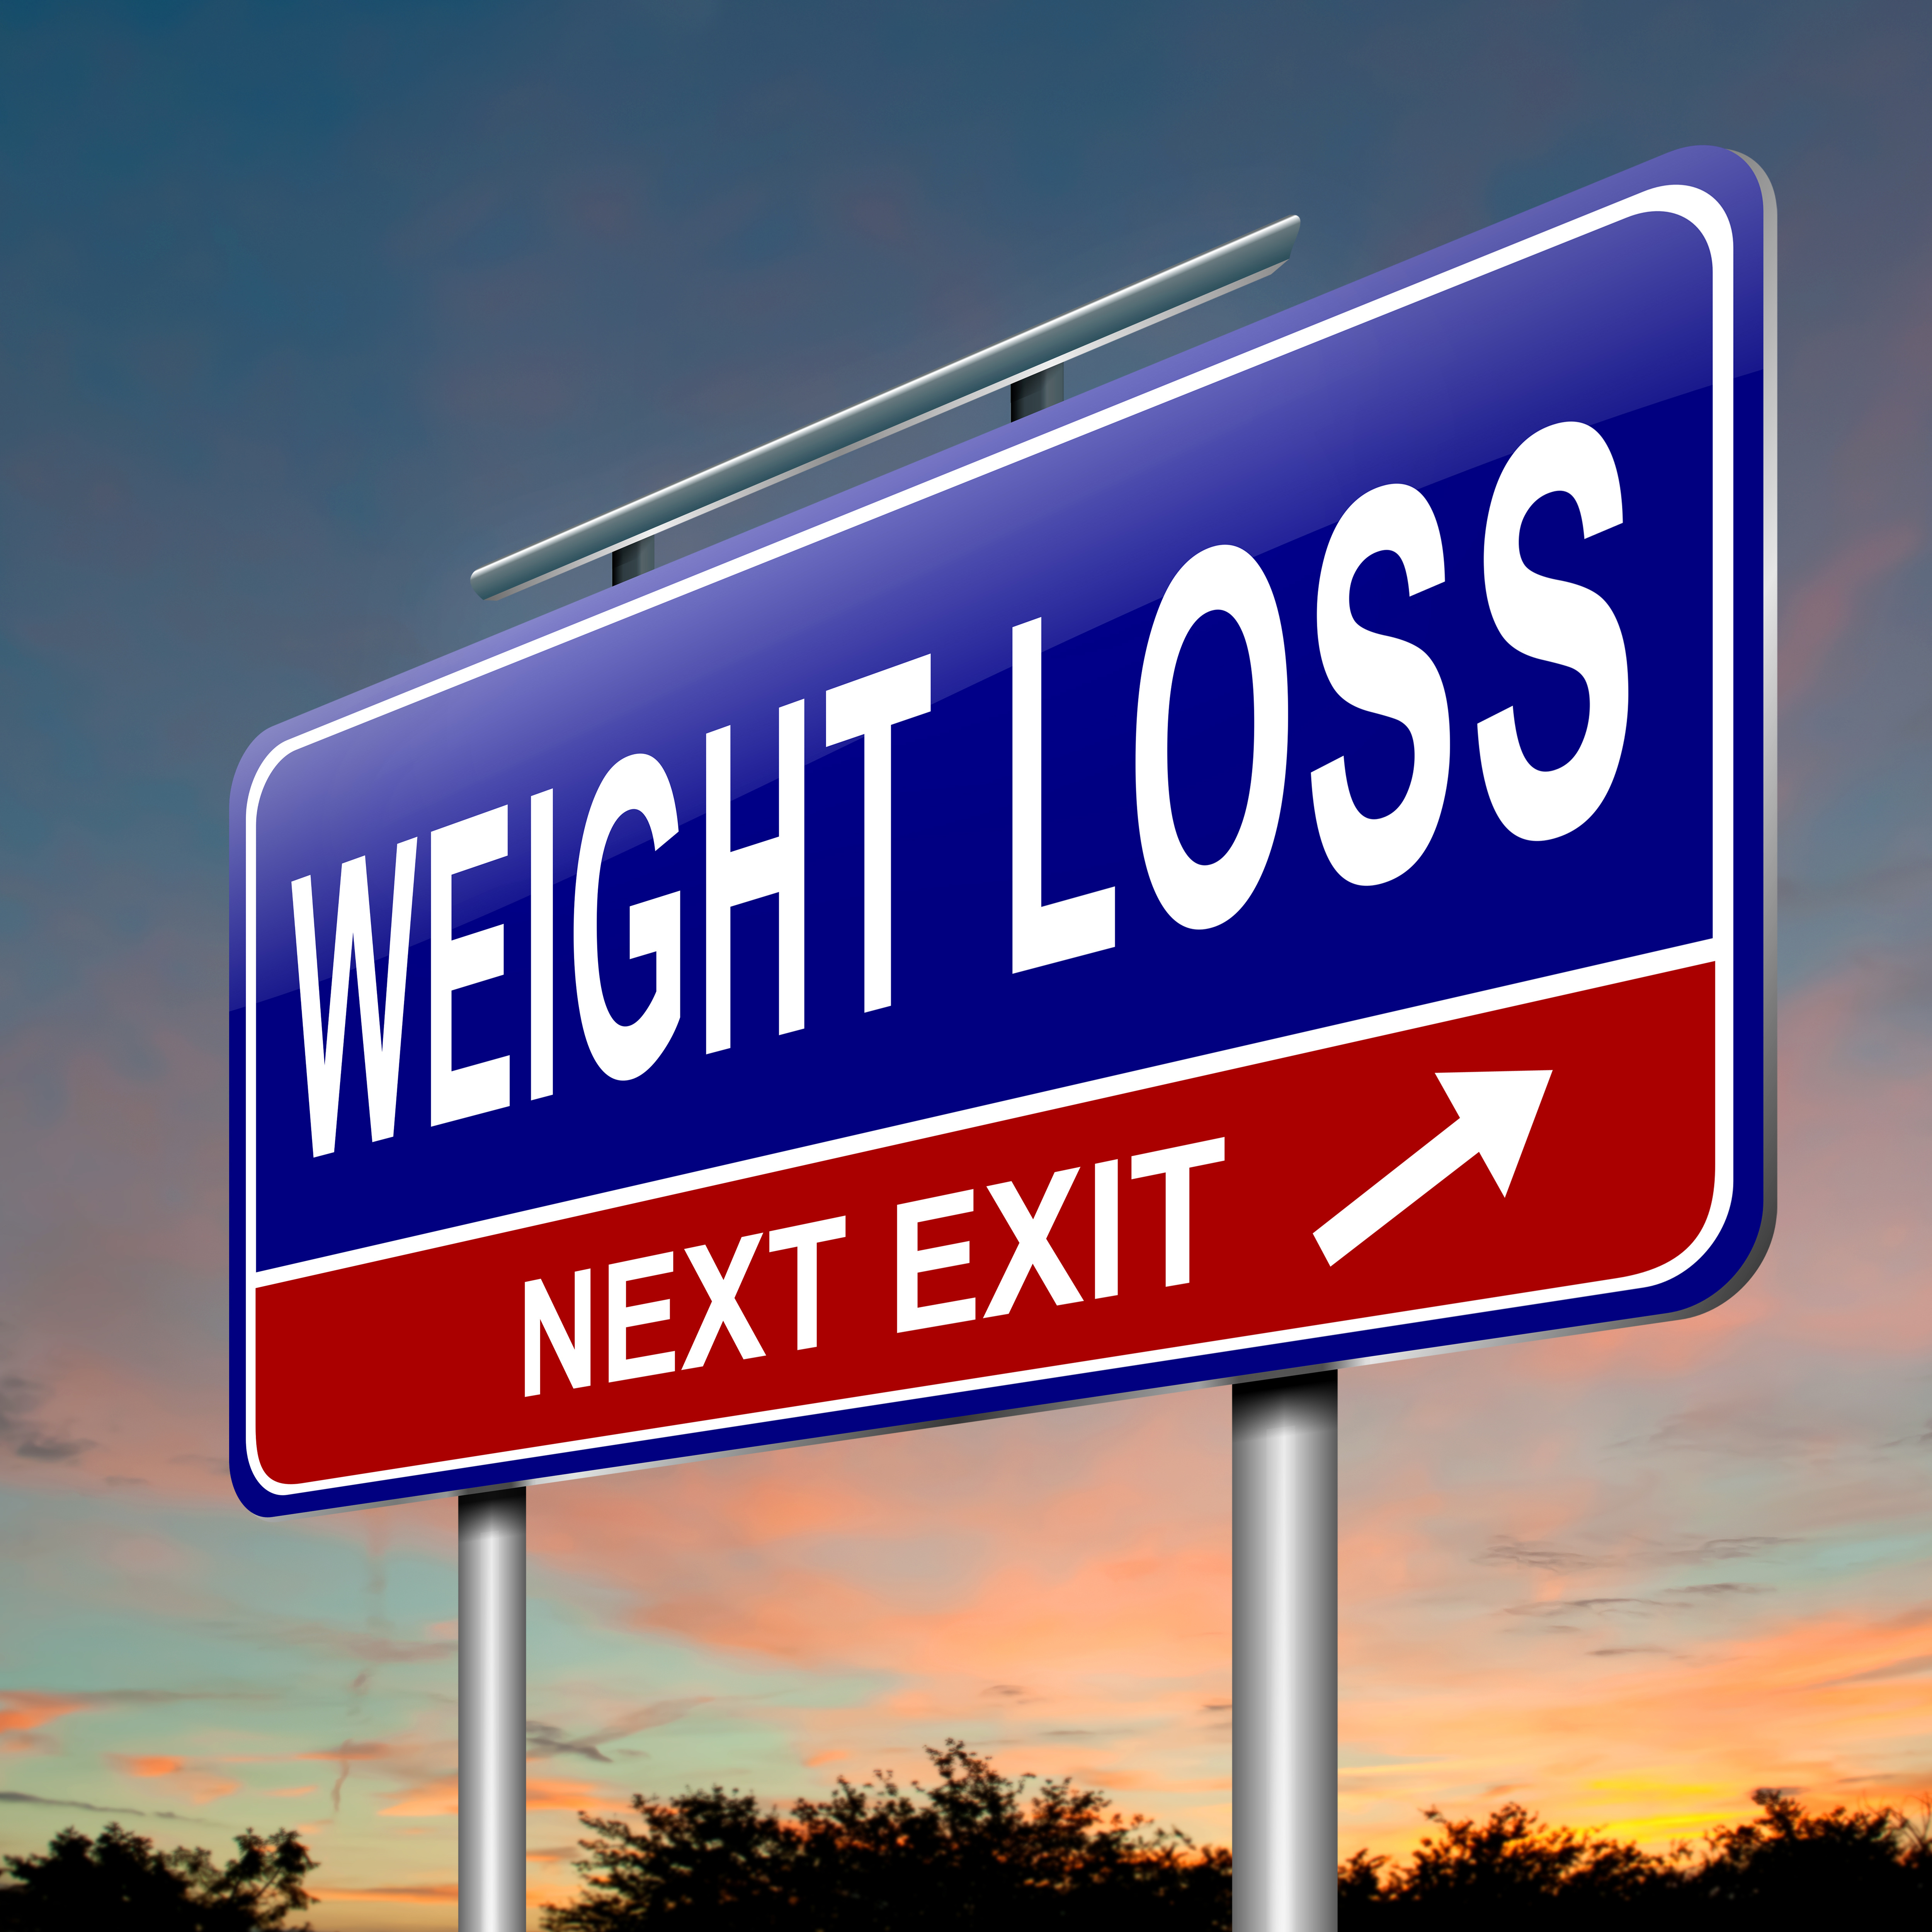 weightloss-sign